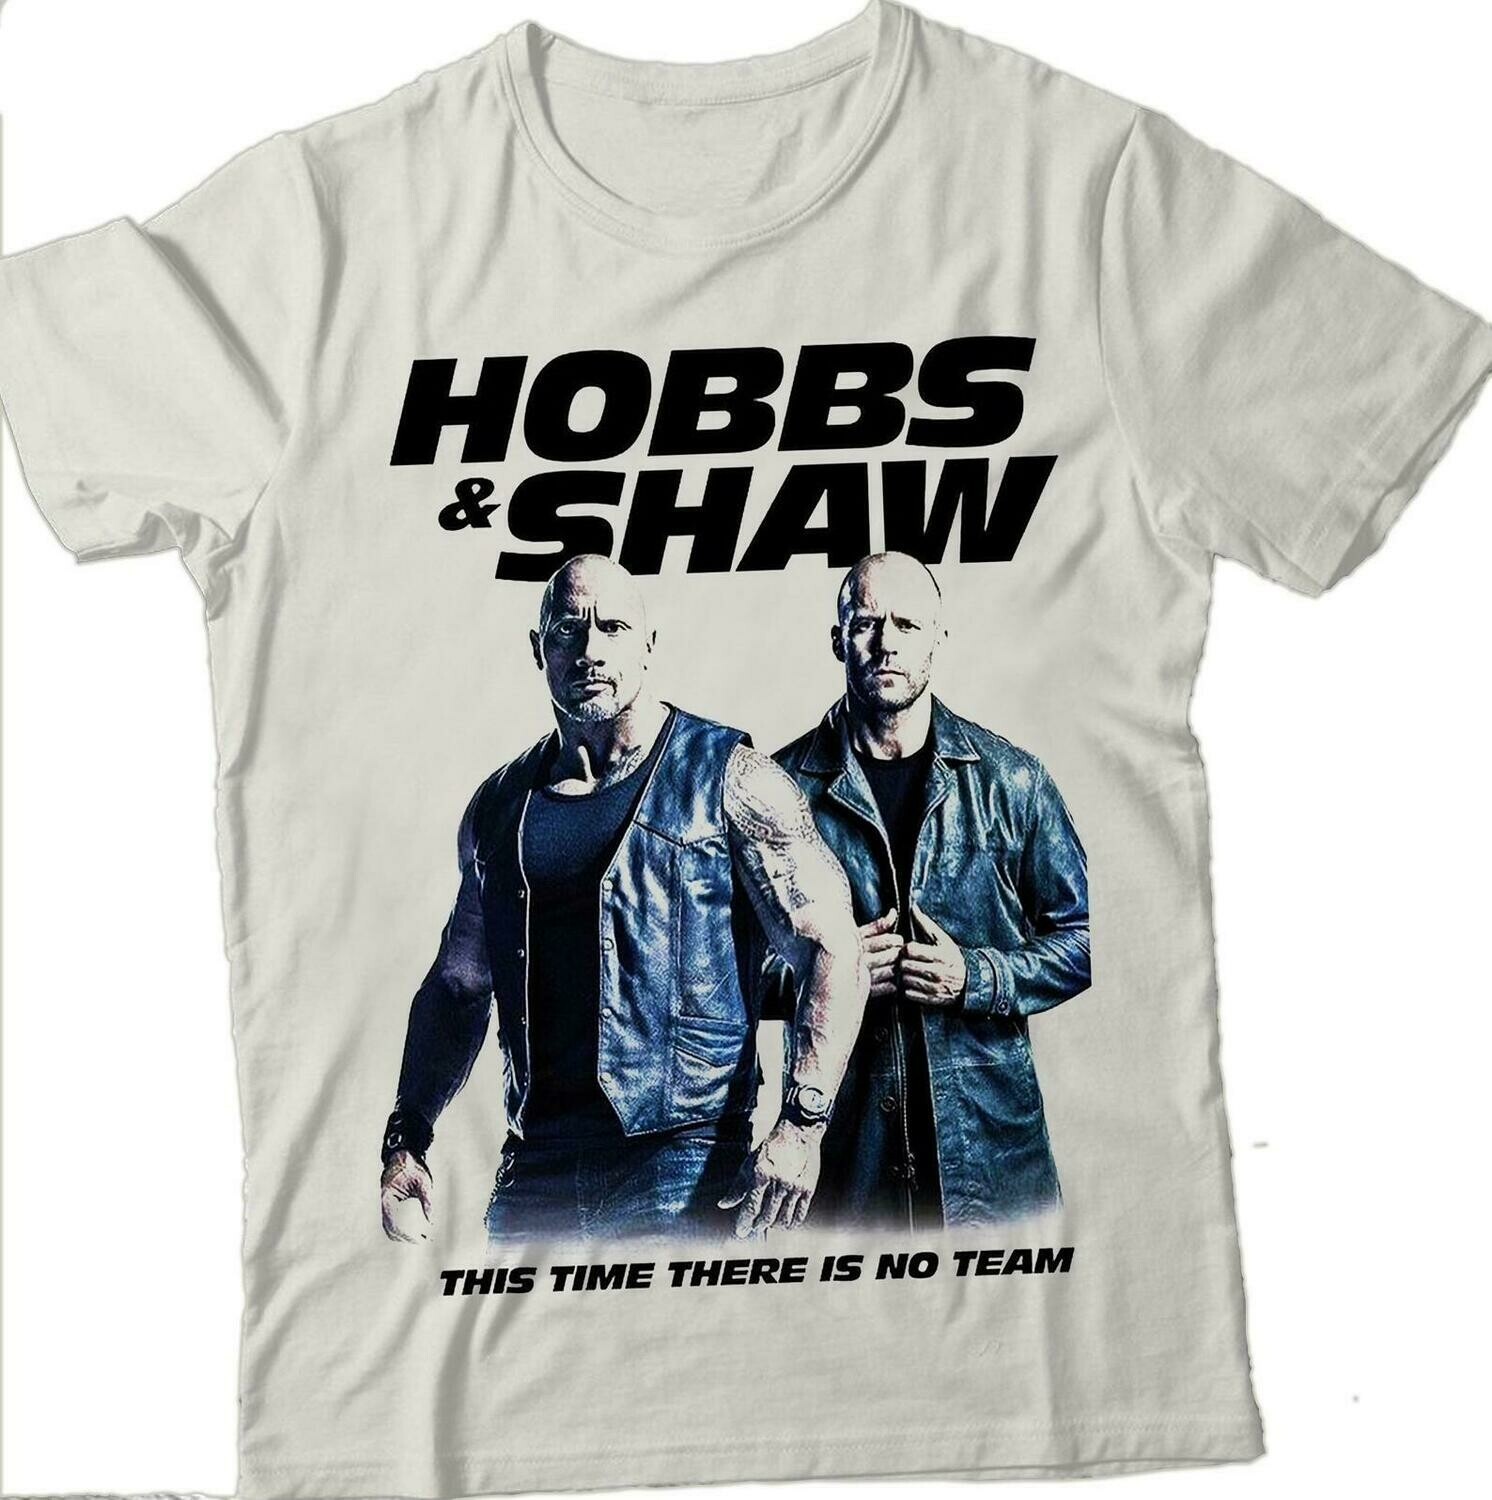 Hobbs And Shaw This Time There Is No Team T Shirt Men T Shirt Men's Tee Unisex Tee Music T shirt